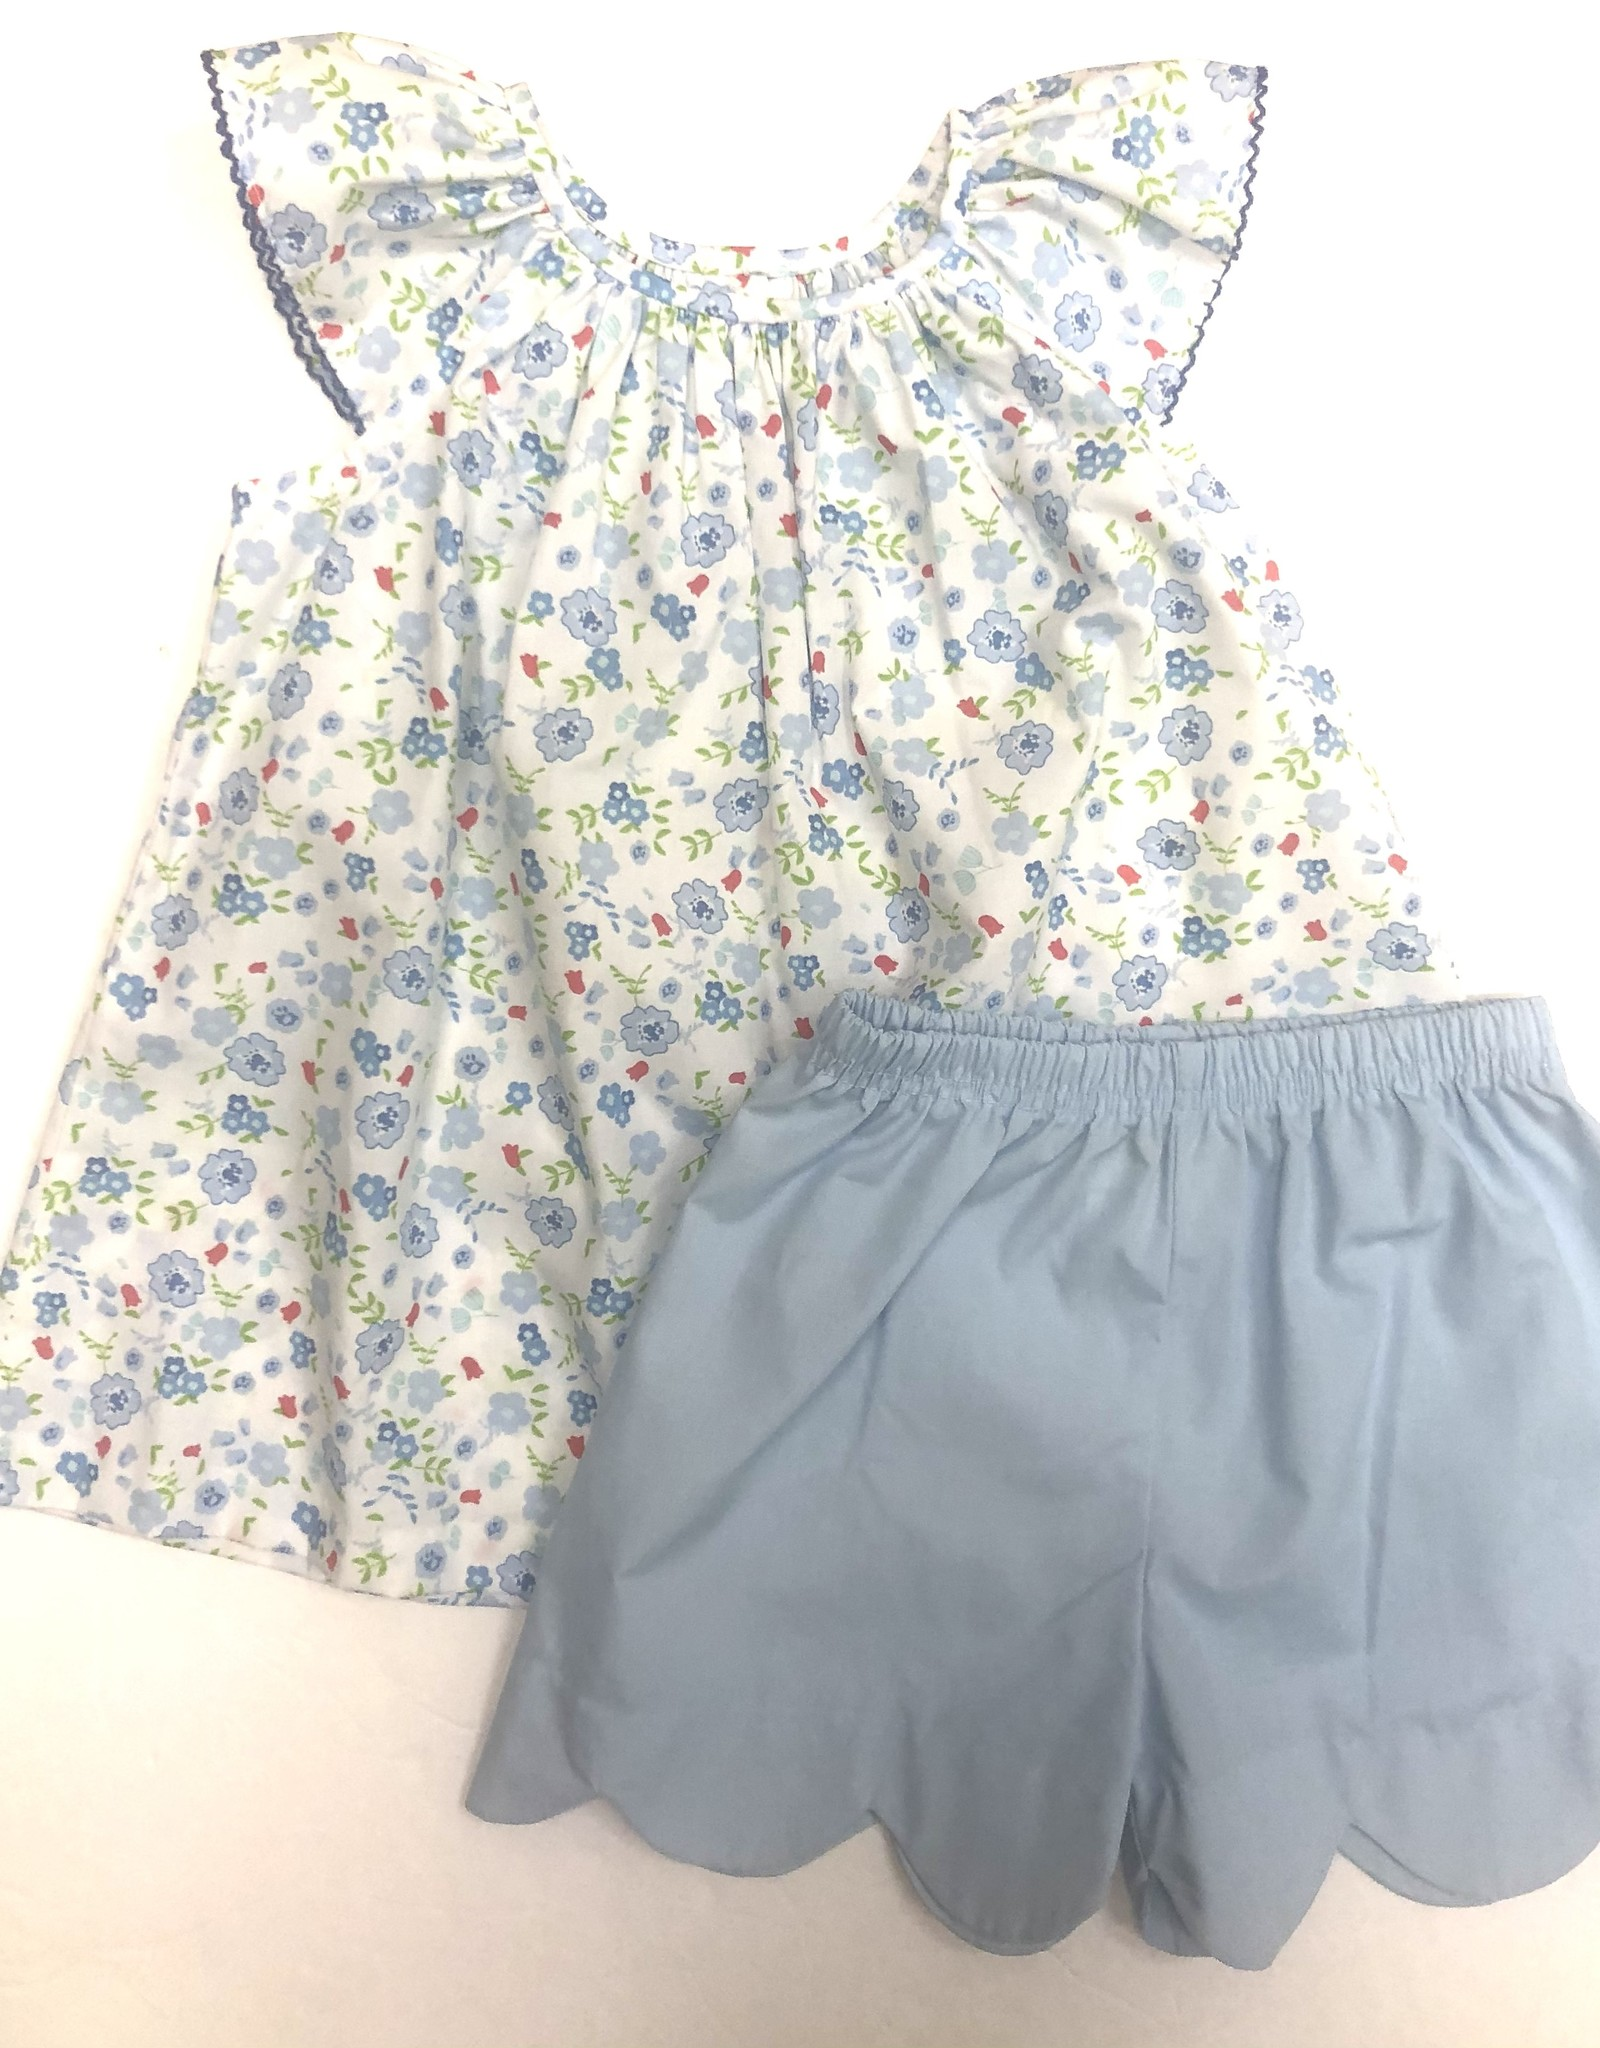 Zuccini Blue Sky Floral Elaine Blouse With Scalloped Shorts